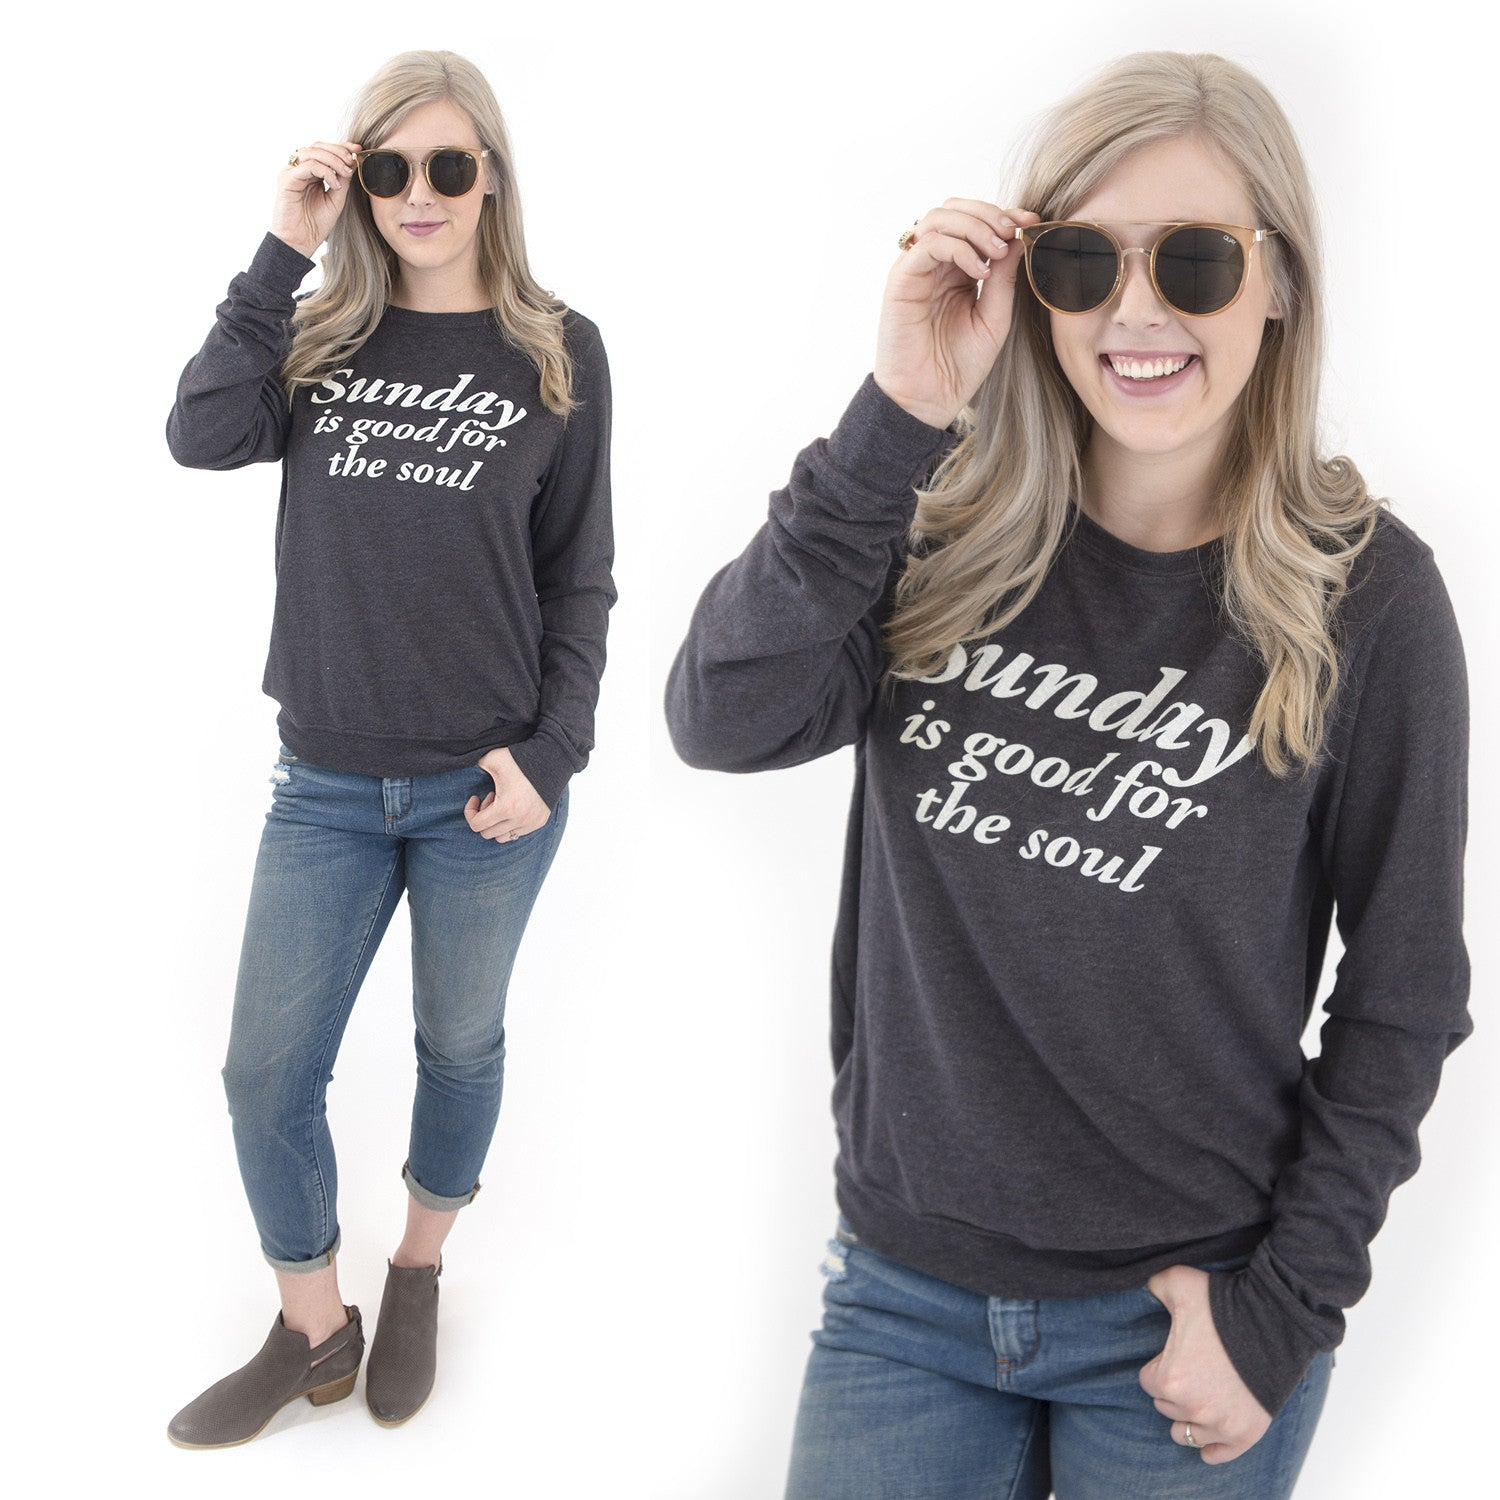 Sundays are good for the soul Christian graphic sweatshirt at Eccentrics Boutique